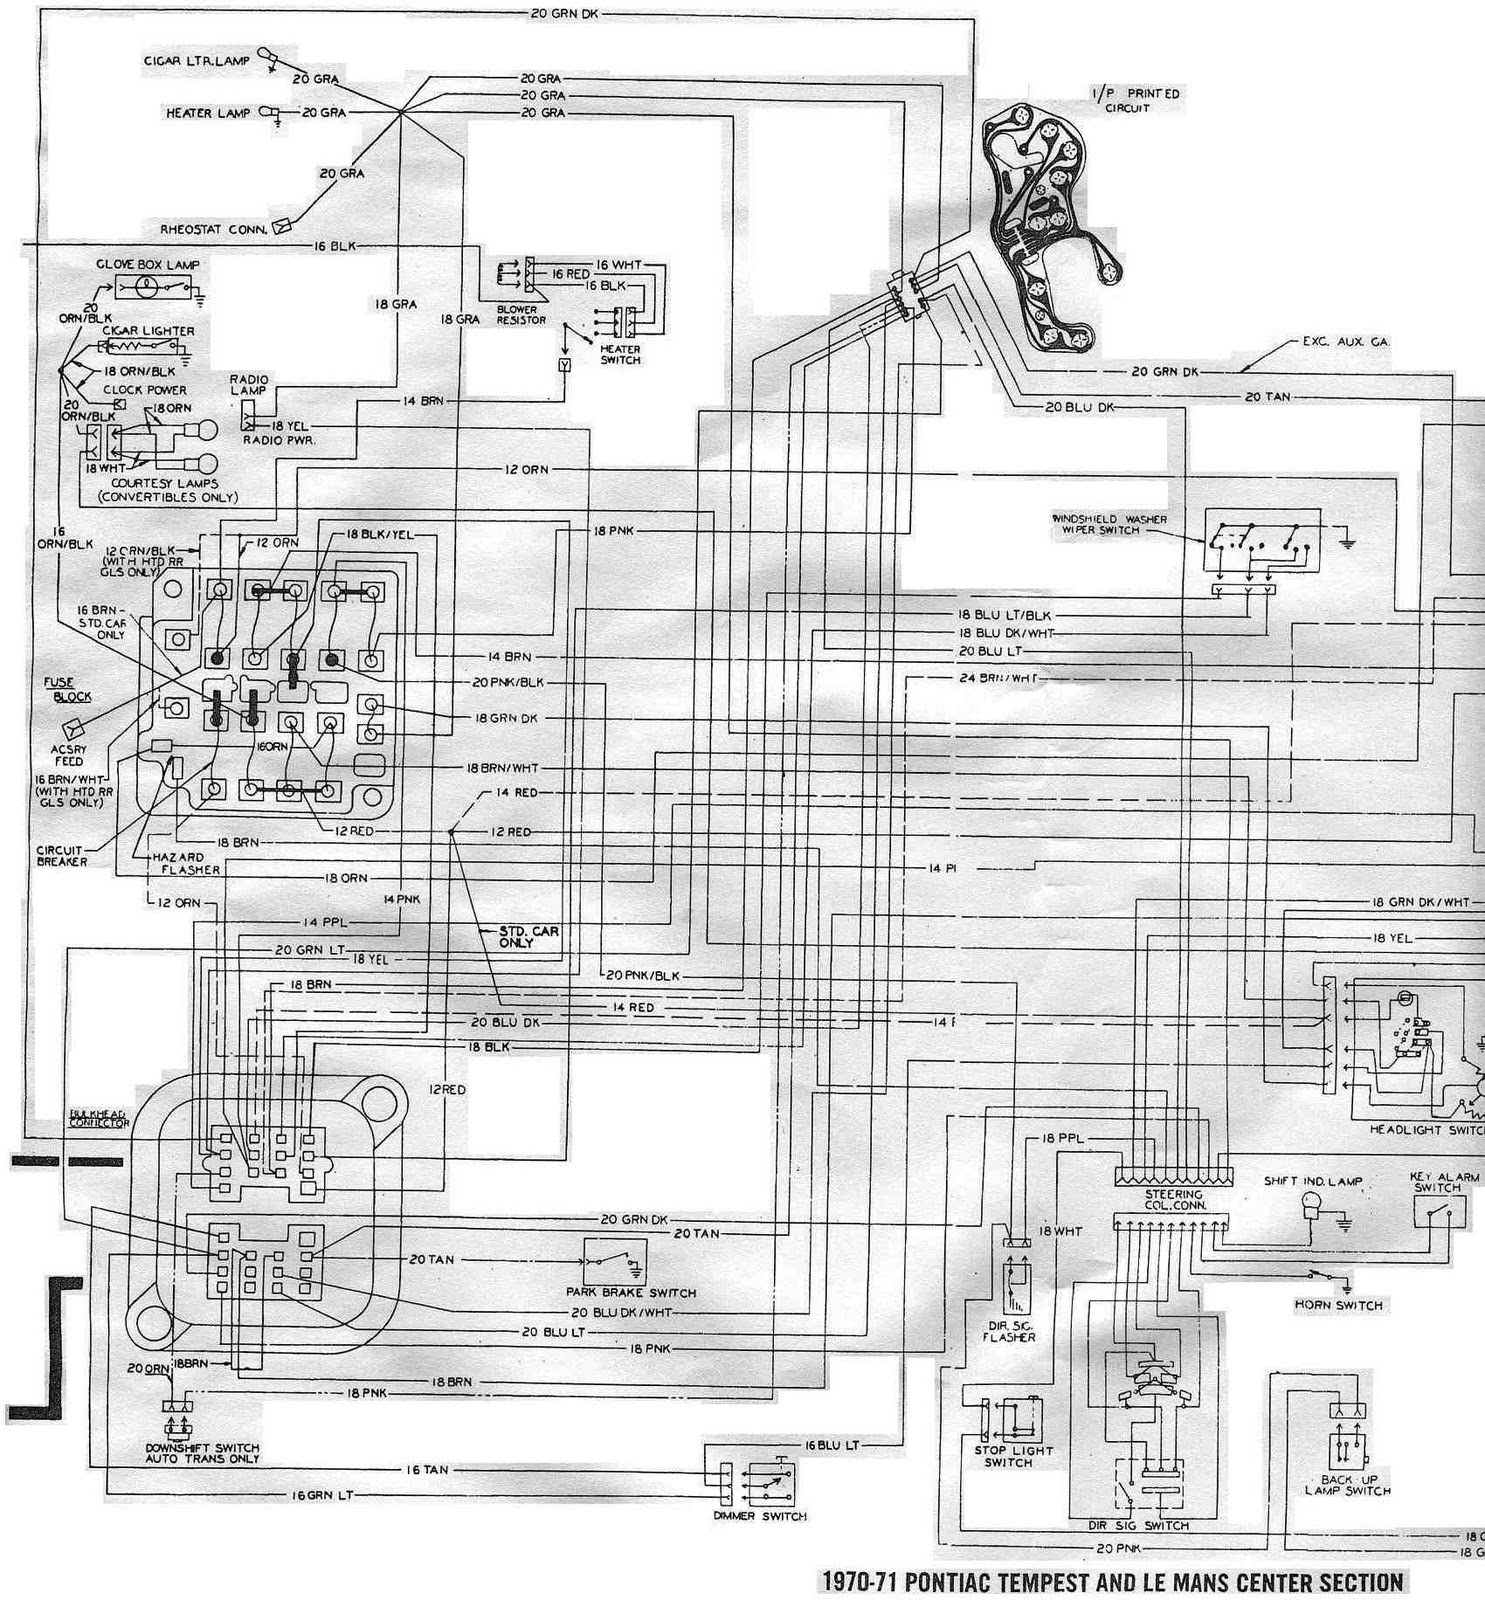 Pontiac+Tempest+and+LeMans+1970 1971+Center+Section+Schematic+Diagram 1967 gto wiring diagram 1967 gto tach wiring diagram \u2022 wiring 1971 cuda air conditioning wiring diagram at nearapp.co